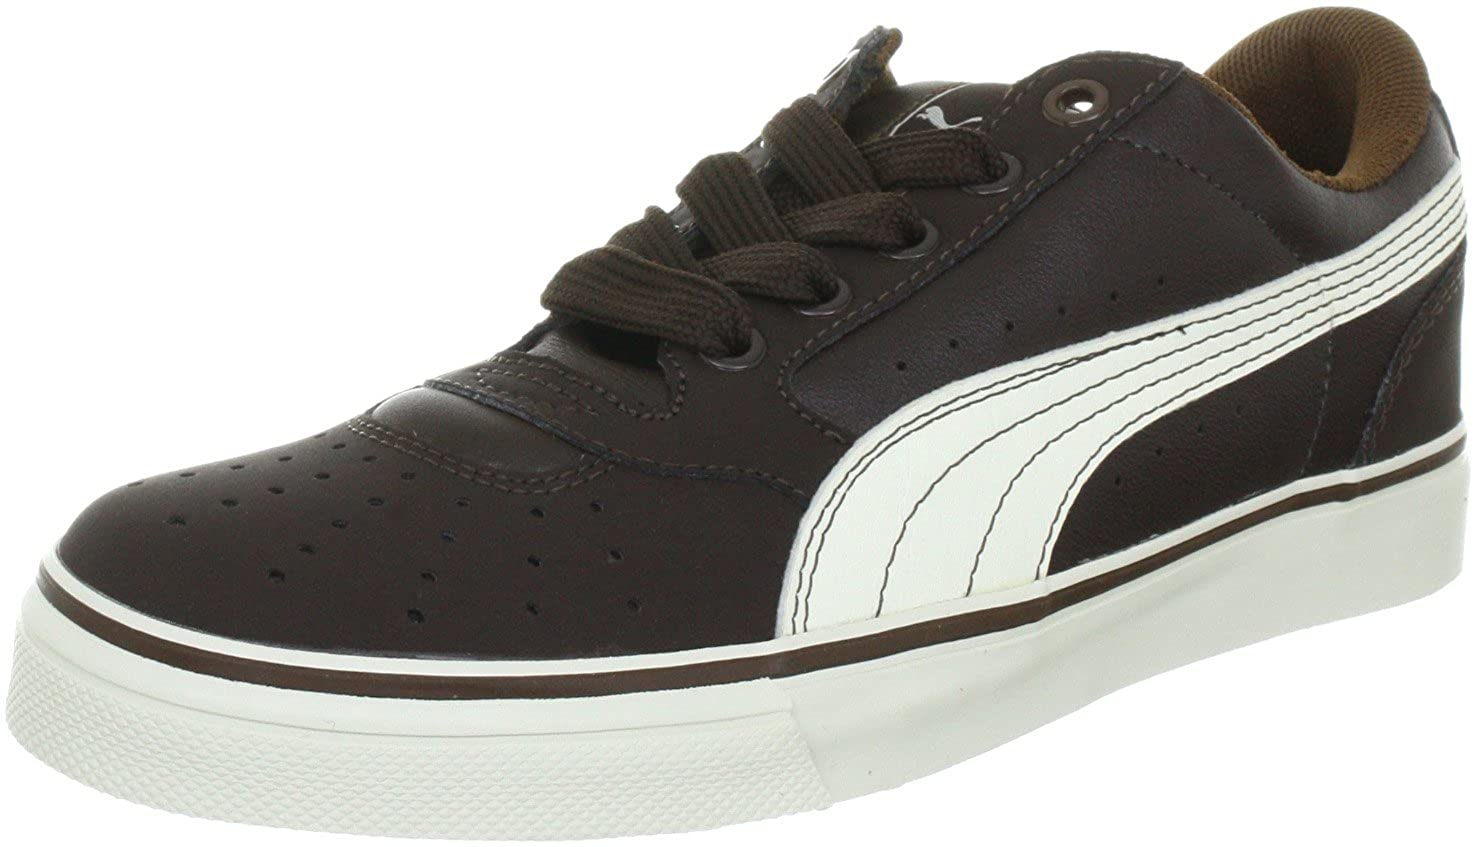 ad55da2fff1 Puma Unisex - Adults Sky 2 Low Vulc Trainers 353272 Chocolate Brow 6.5 UK   Amazon.co.uk  Shoes   Bags